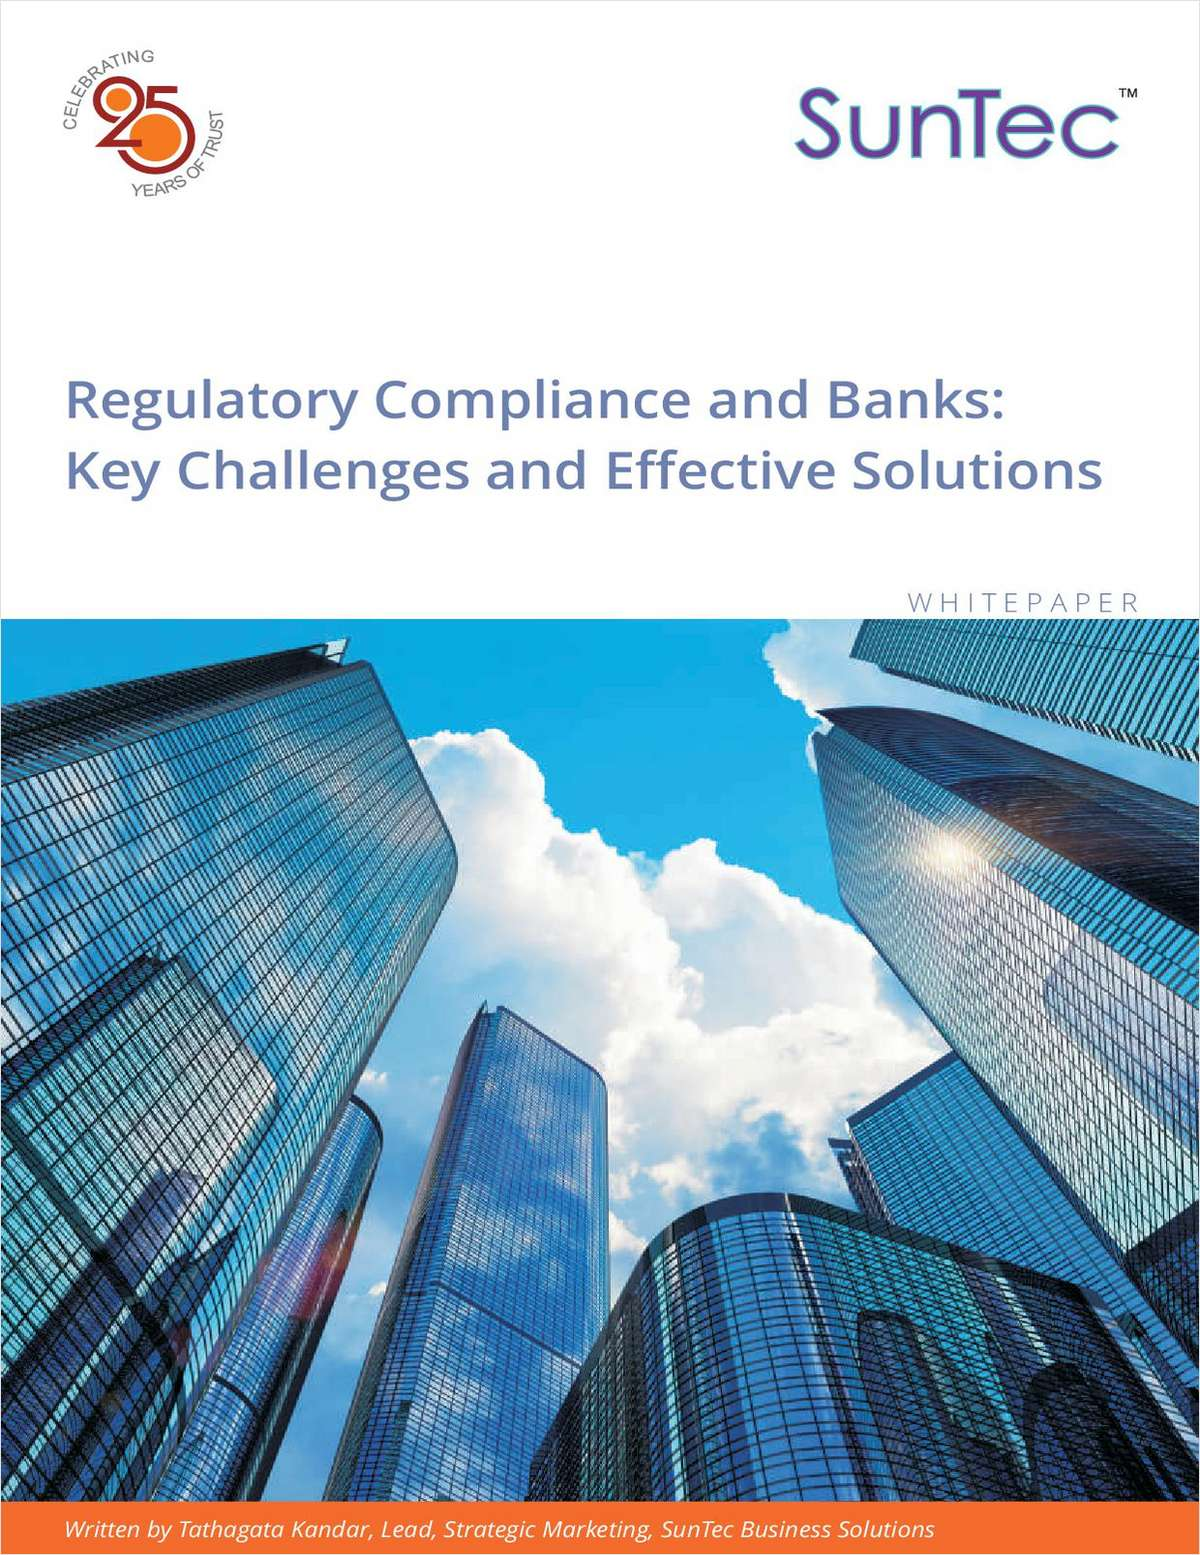 Regulatory Compliance and Banks: Key Challenges and Effective Solutions